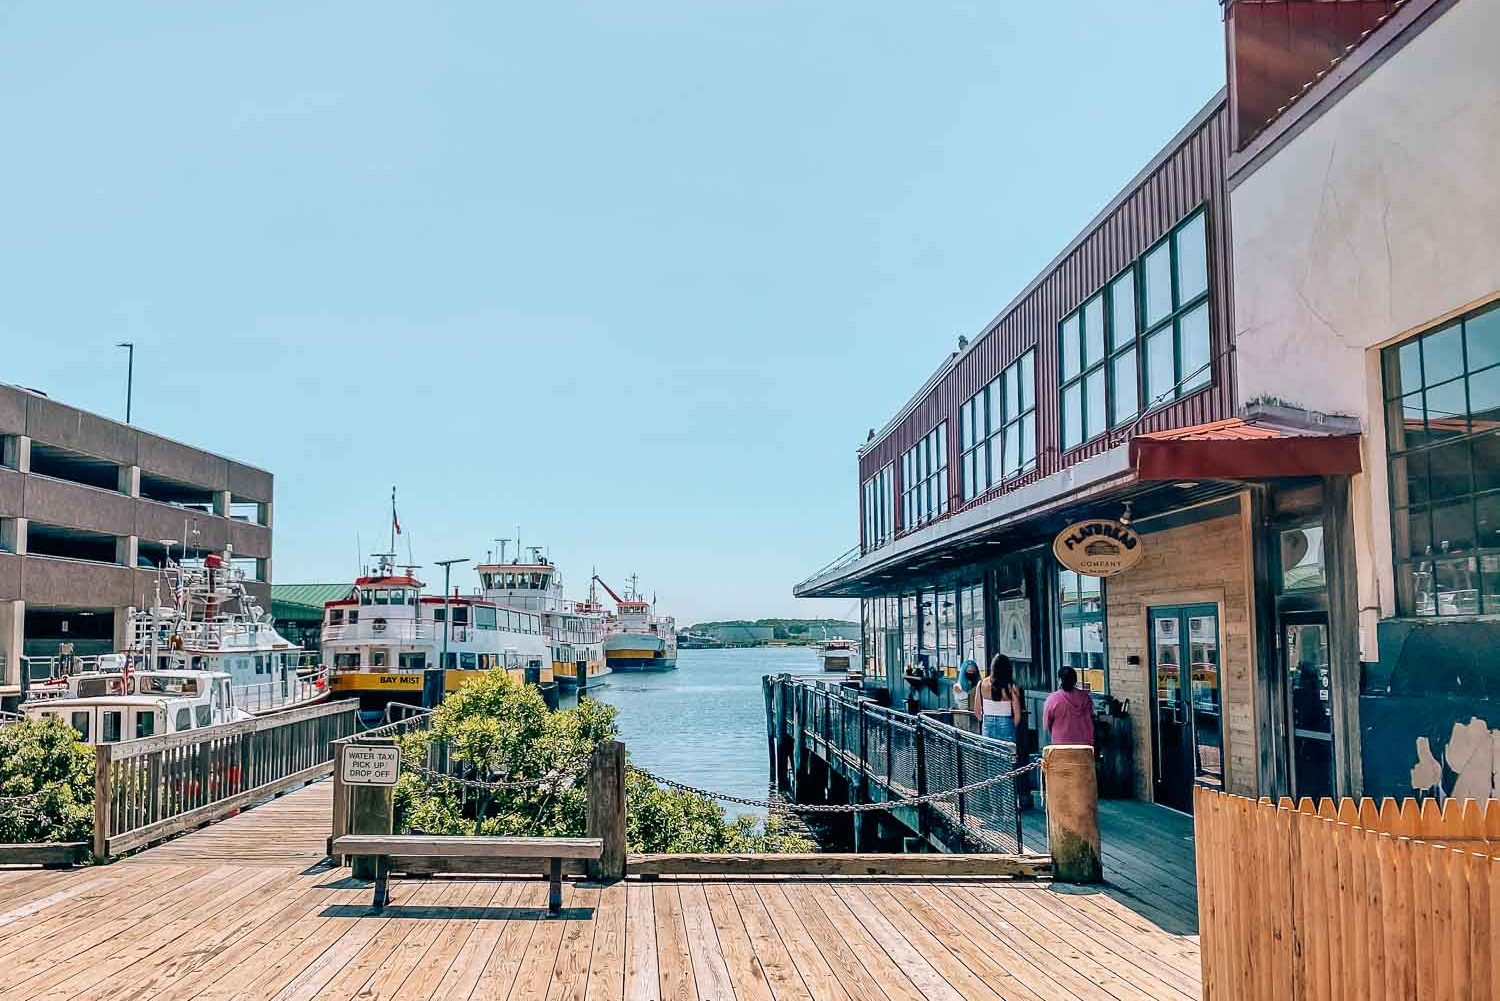 exterior of Flatbread Company pizza restaurant in Portland Maine. There is a boardwalk that surrounds the building that is waterfront. In the harbor there are a few large boats.